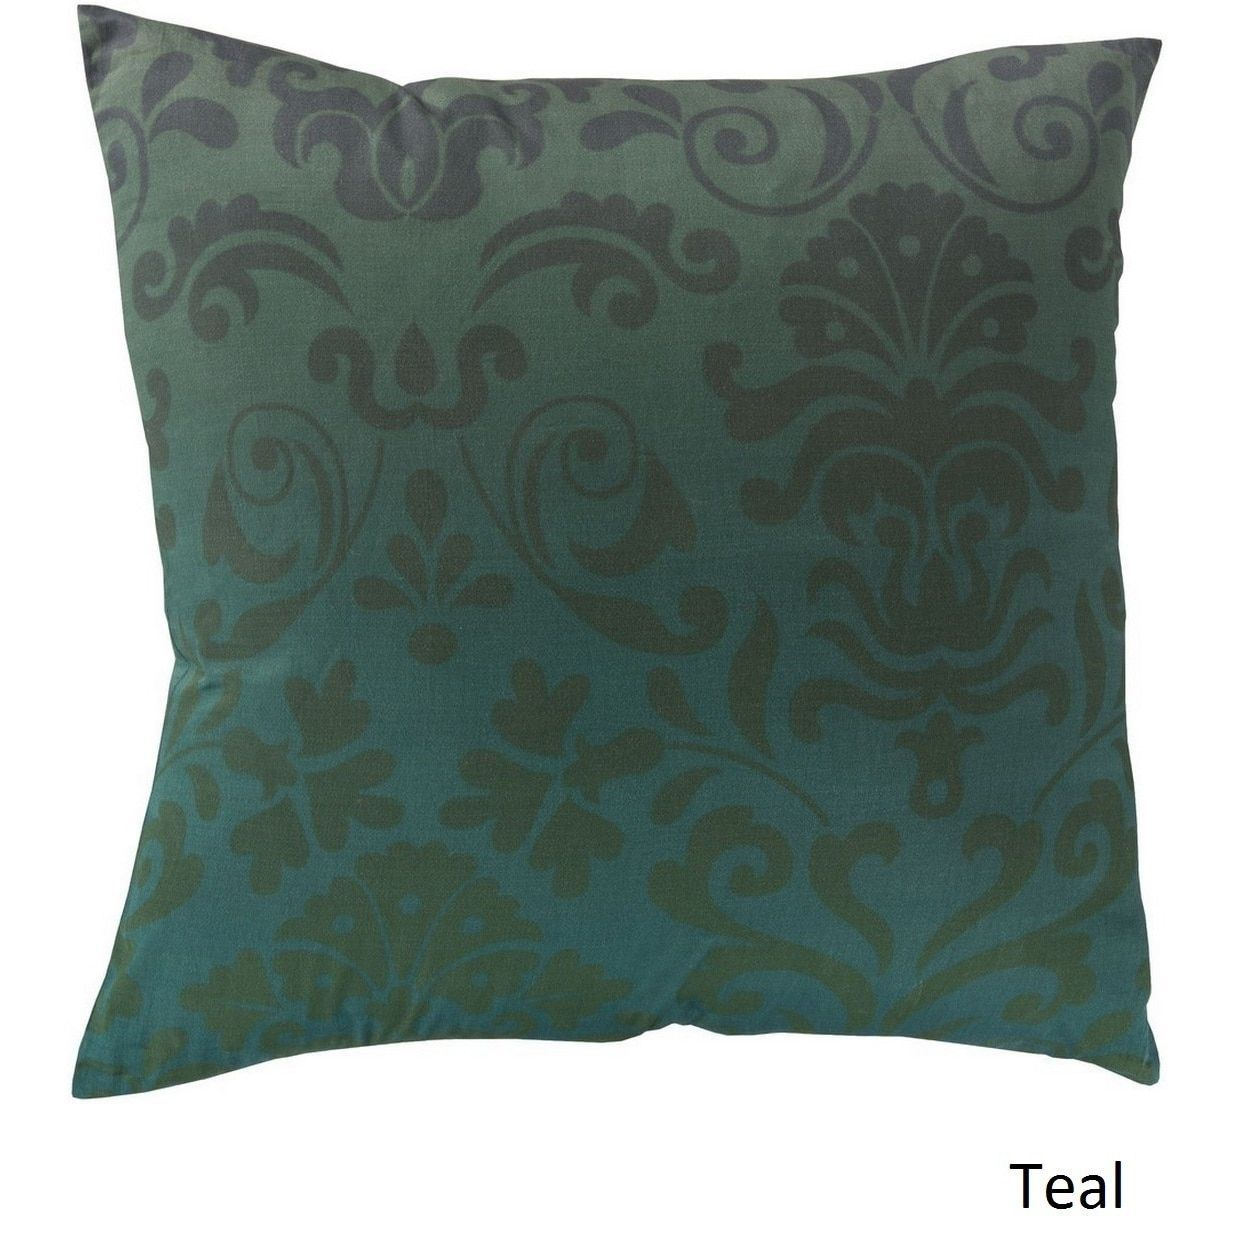 Decorative Southall 20-inch Floral Pillow Cover | Products, Pillow ...